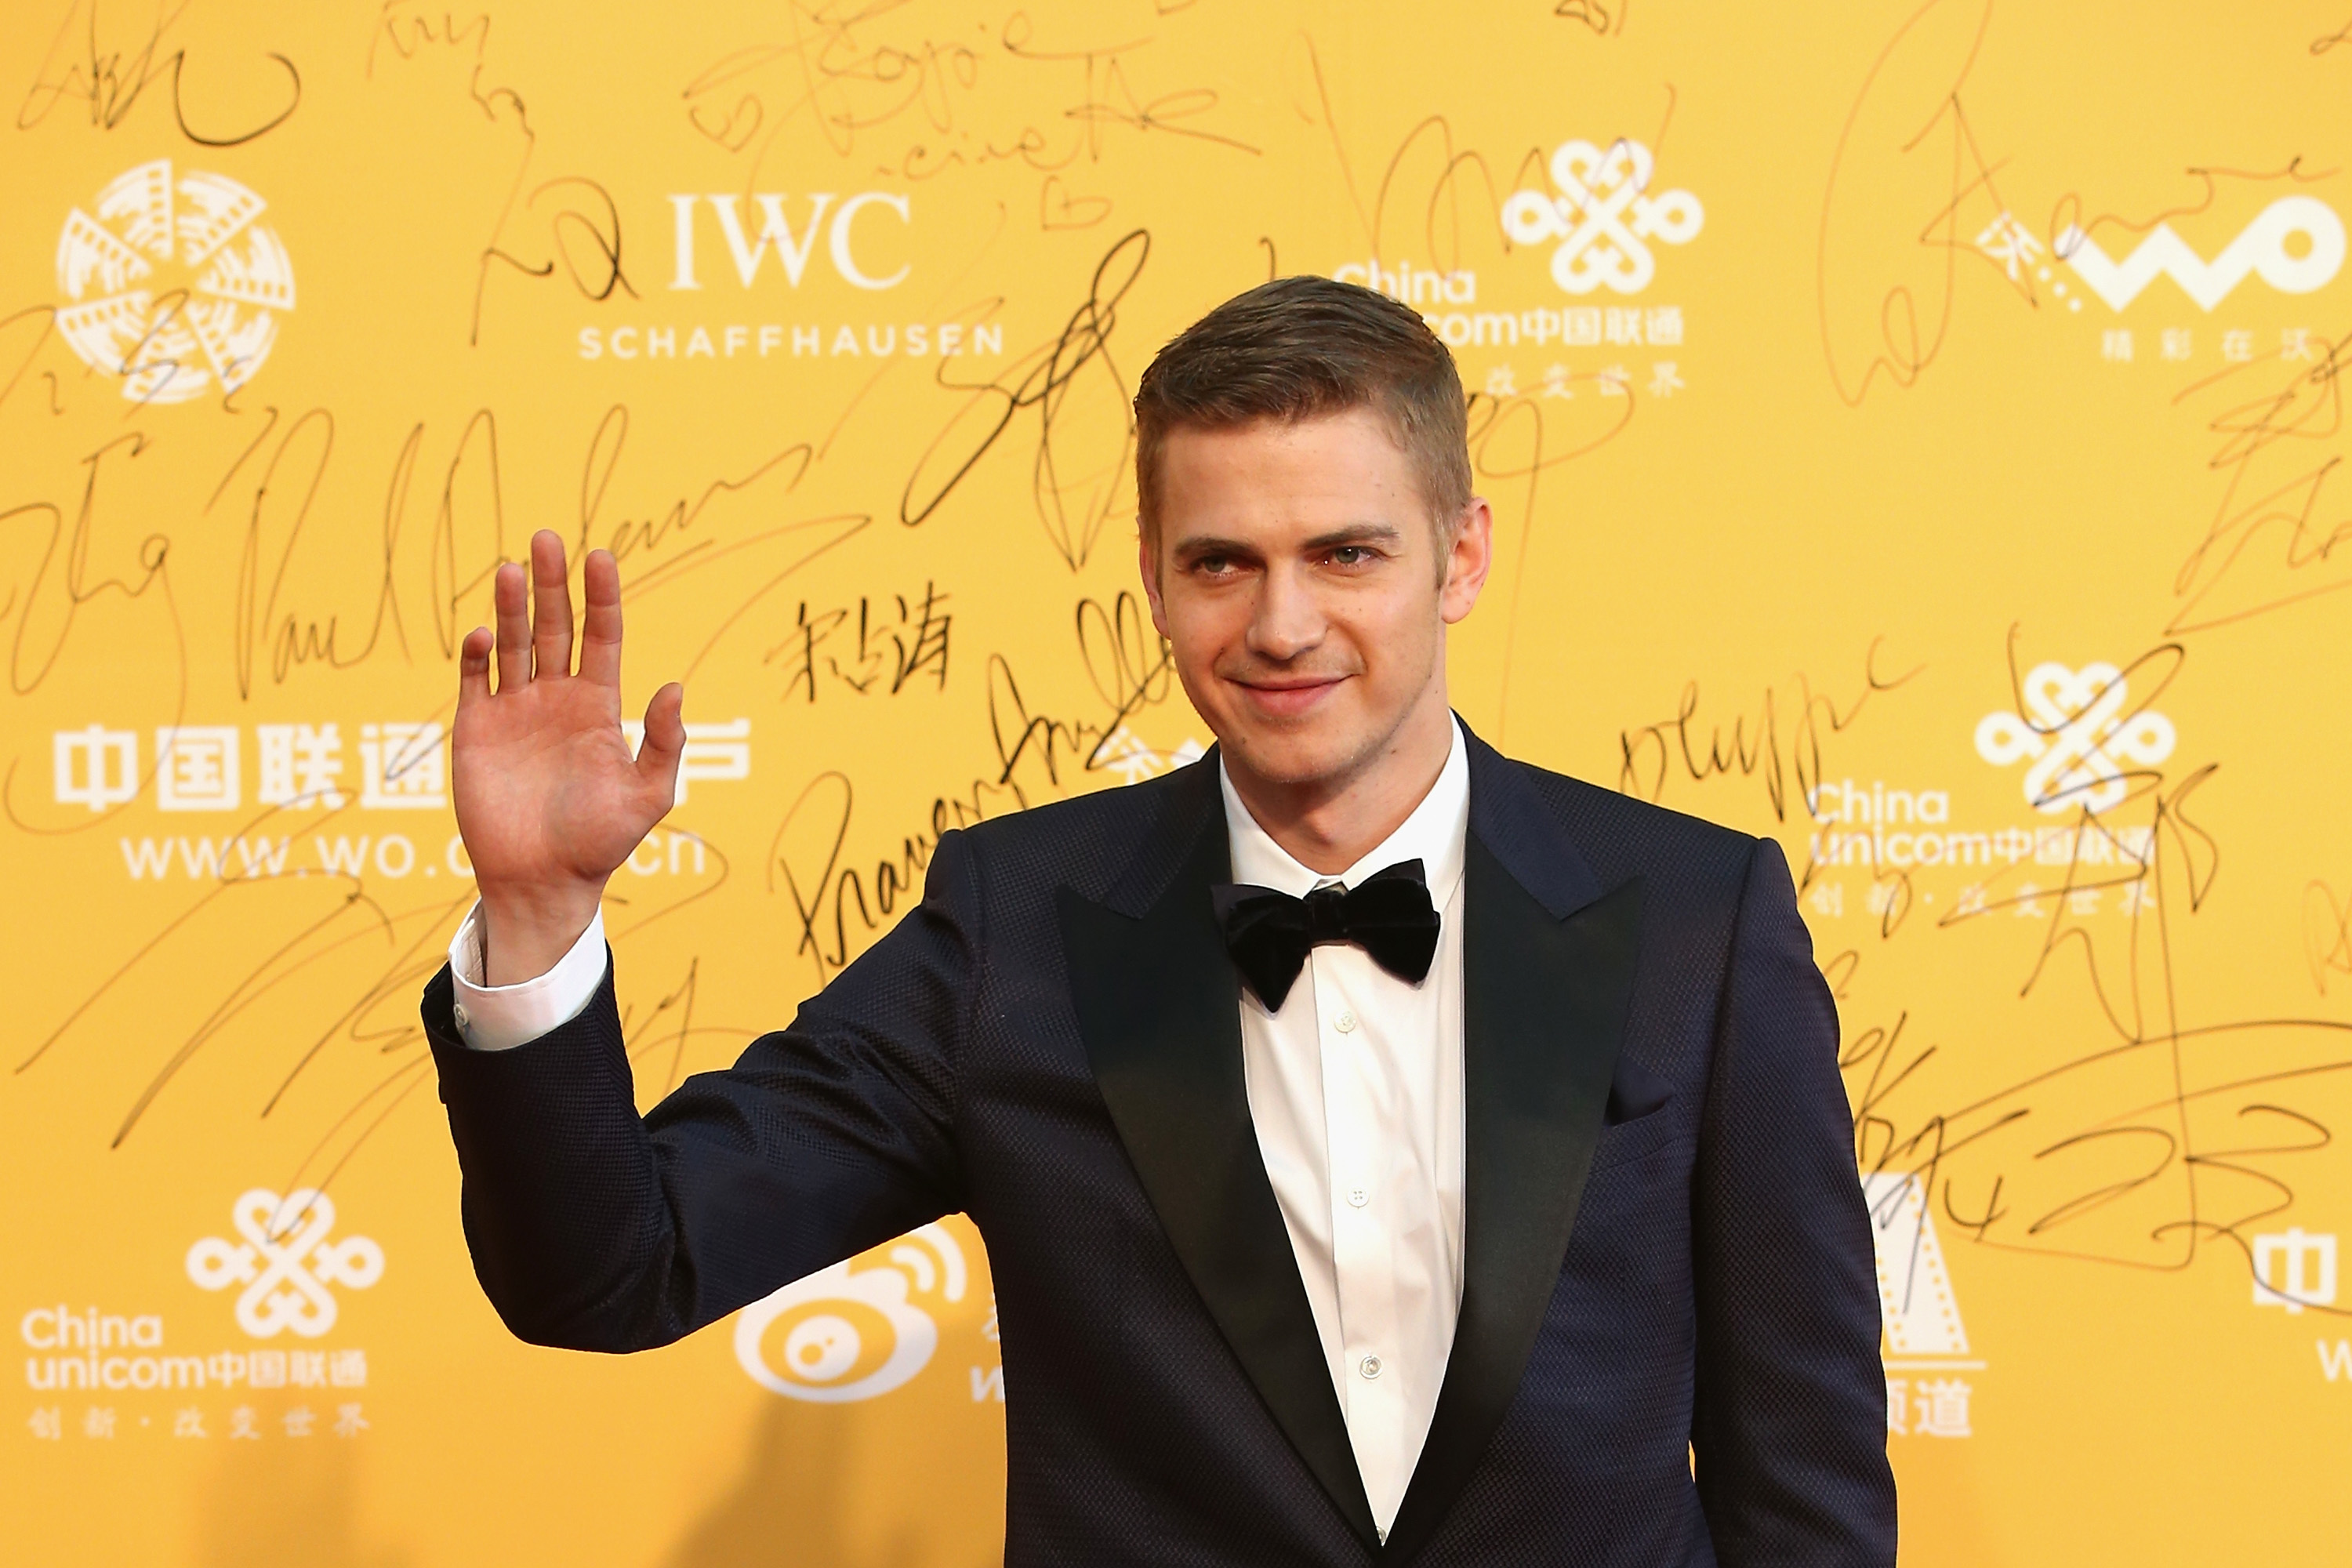 BEIJING, CHINA - APRIL 16:  Actor Hayden Christensen arrives for the red carpet of 4th Beijing International Film Festival at China's National Grand Theater on April 16, 2014 in Beijing, China.  (Photo by Feng Li/Getty Images)